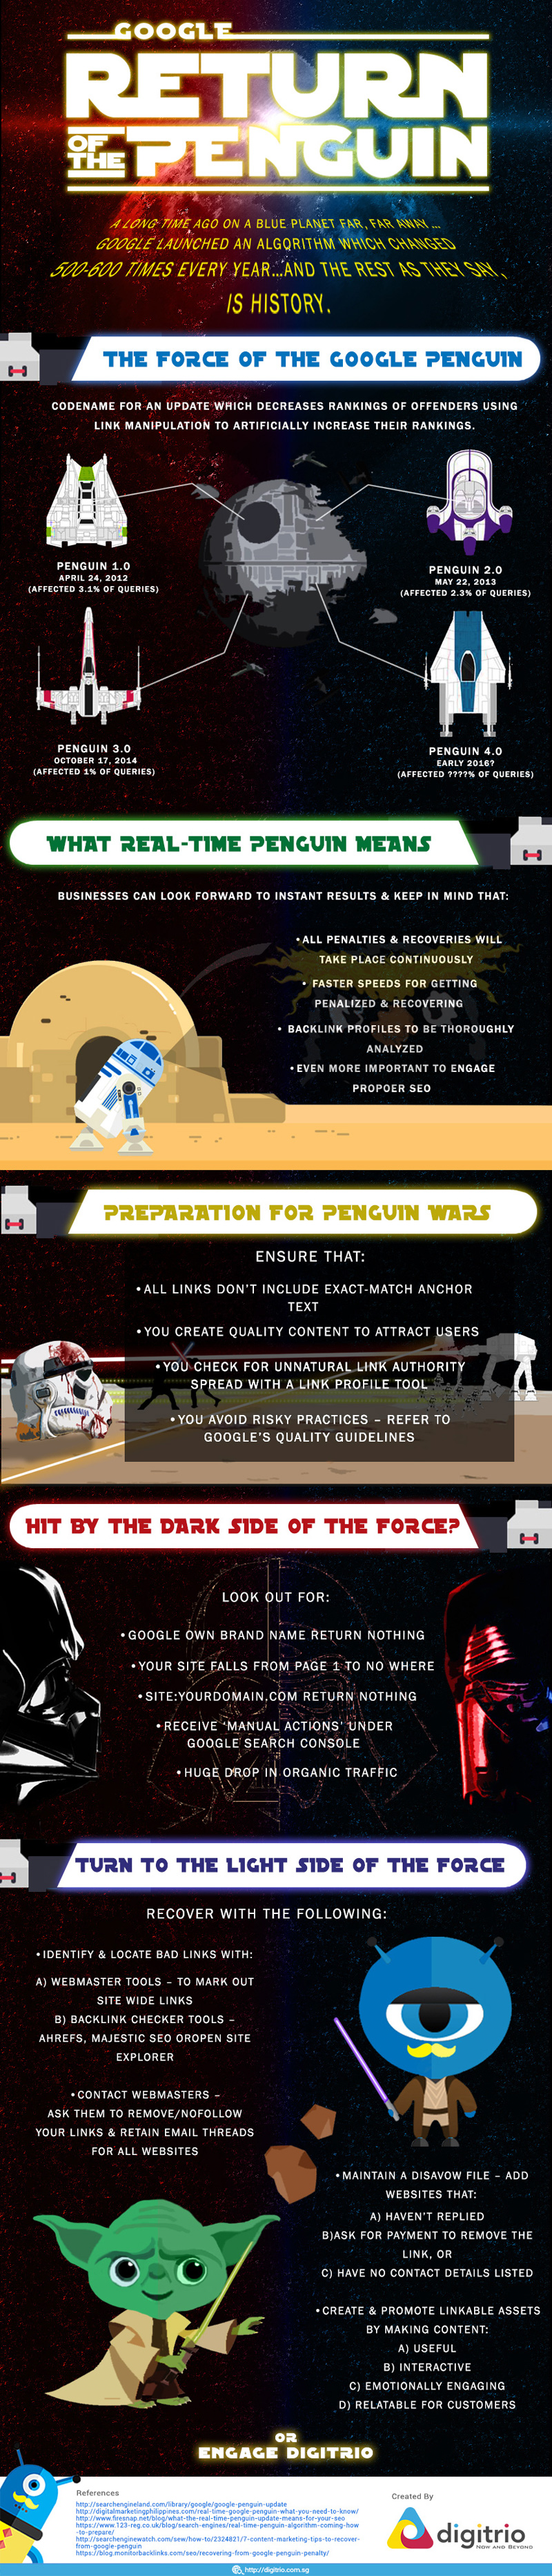 The Return of the Penguin (Real-time)